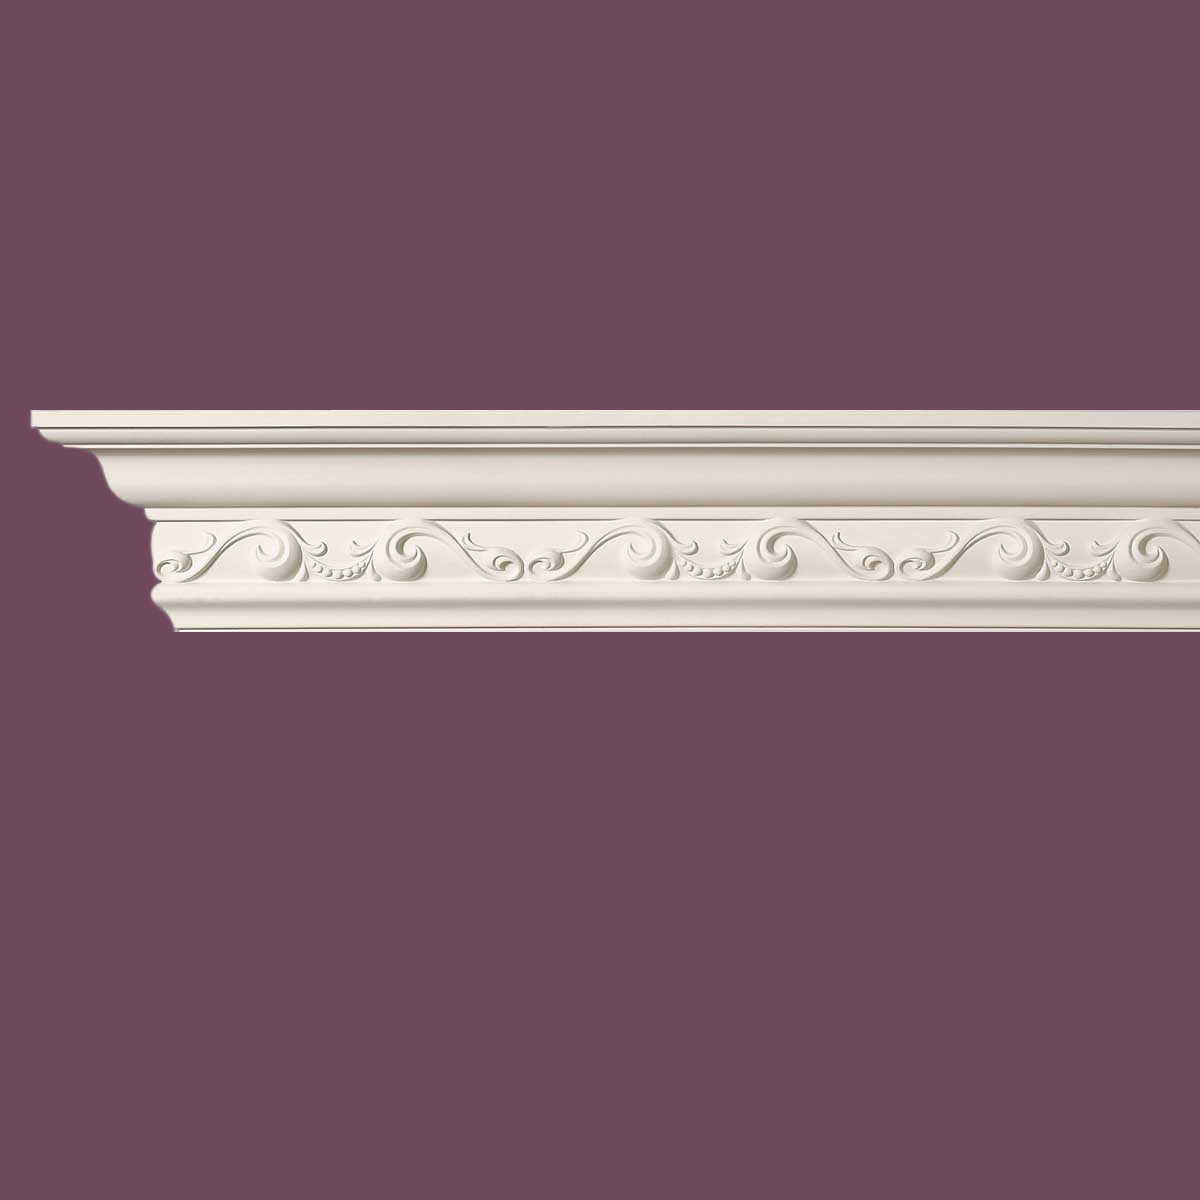 Cornice White Urethane Sample of 11452 23.5 Long Cornice Cornice Moulding Cornice Molding